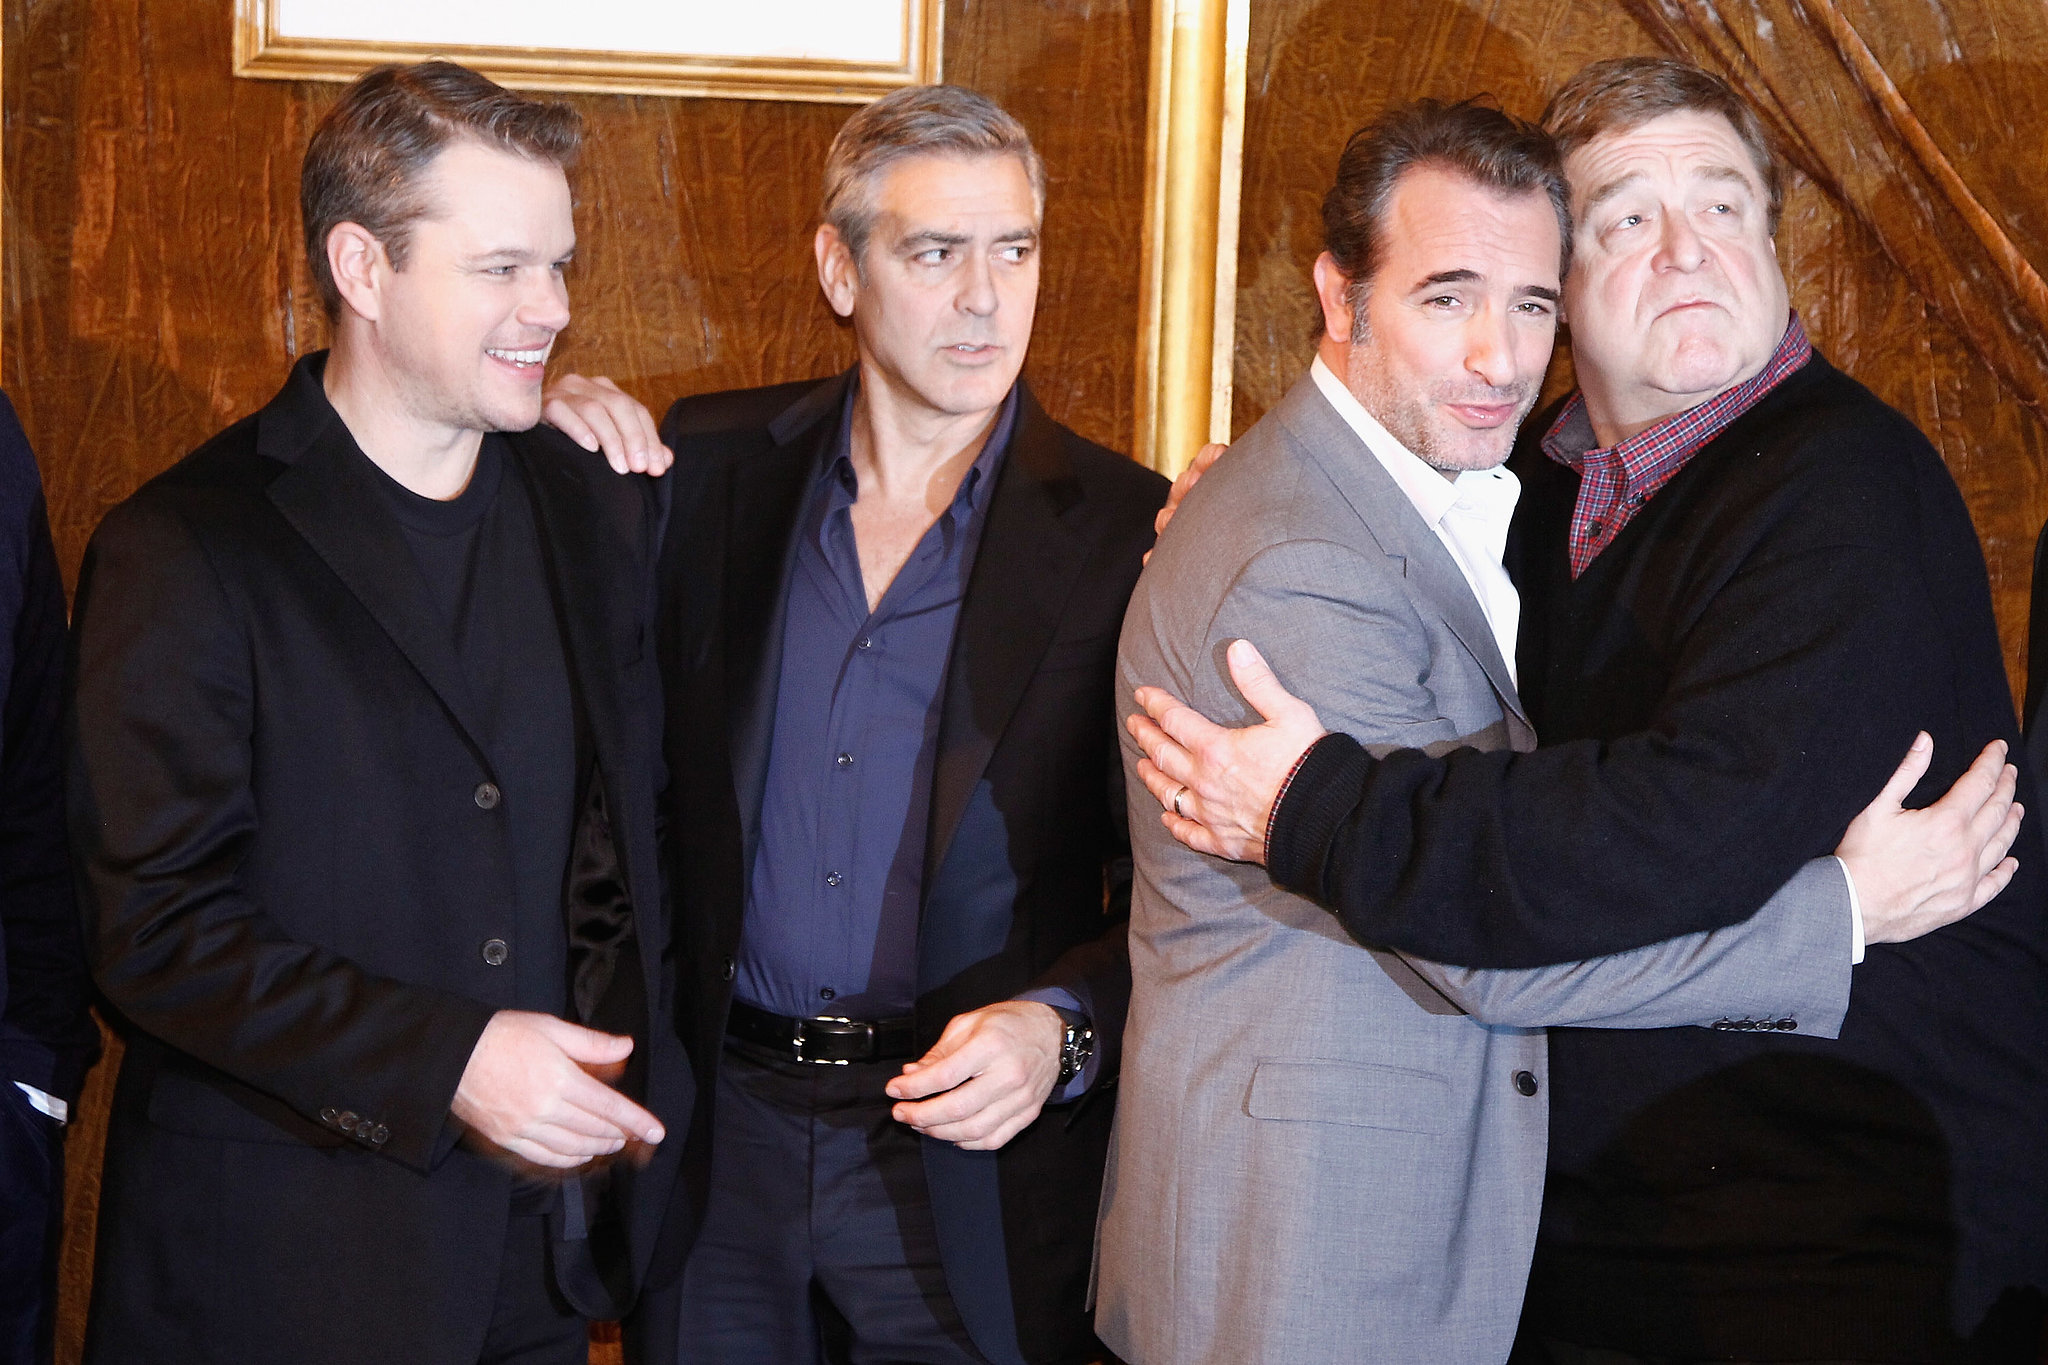 In Paris, everyone was feeling the love. Jean and John shared a hug, but George looked kind of jealous.